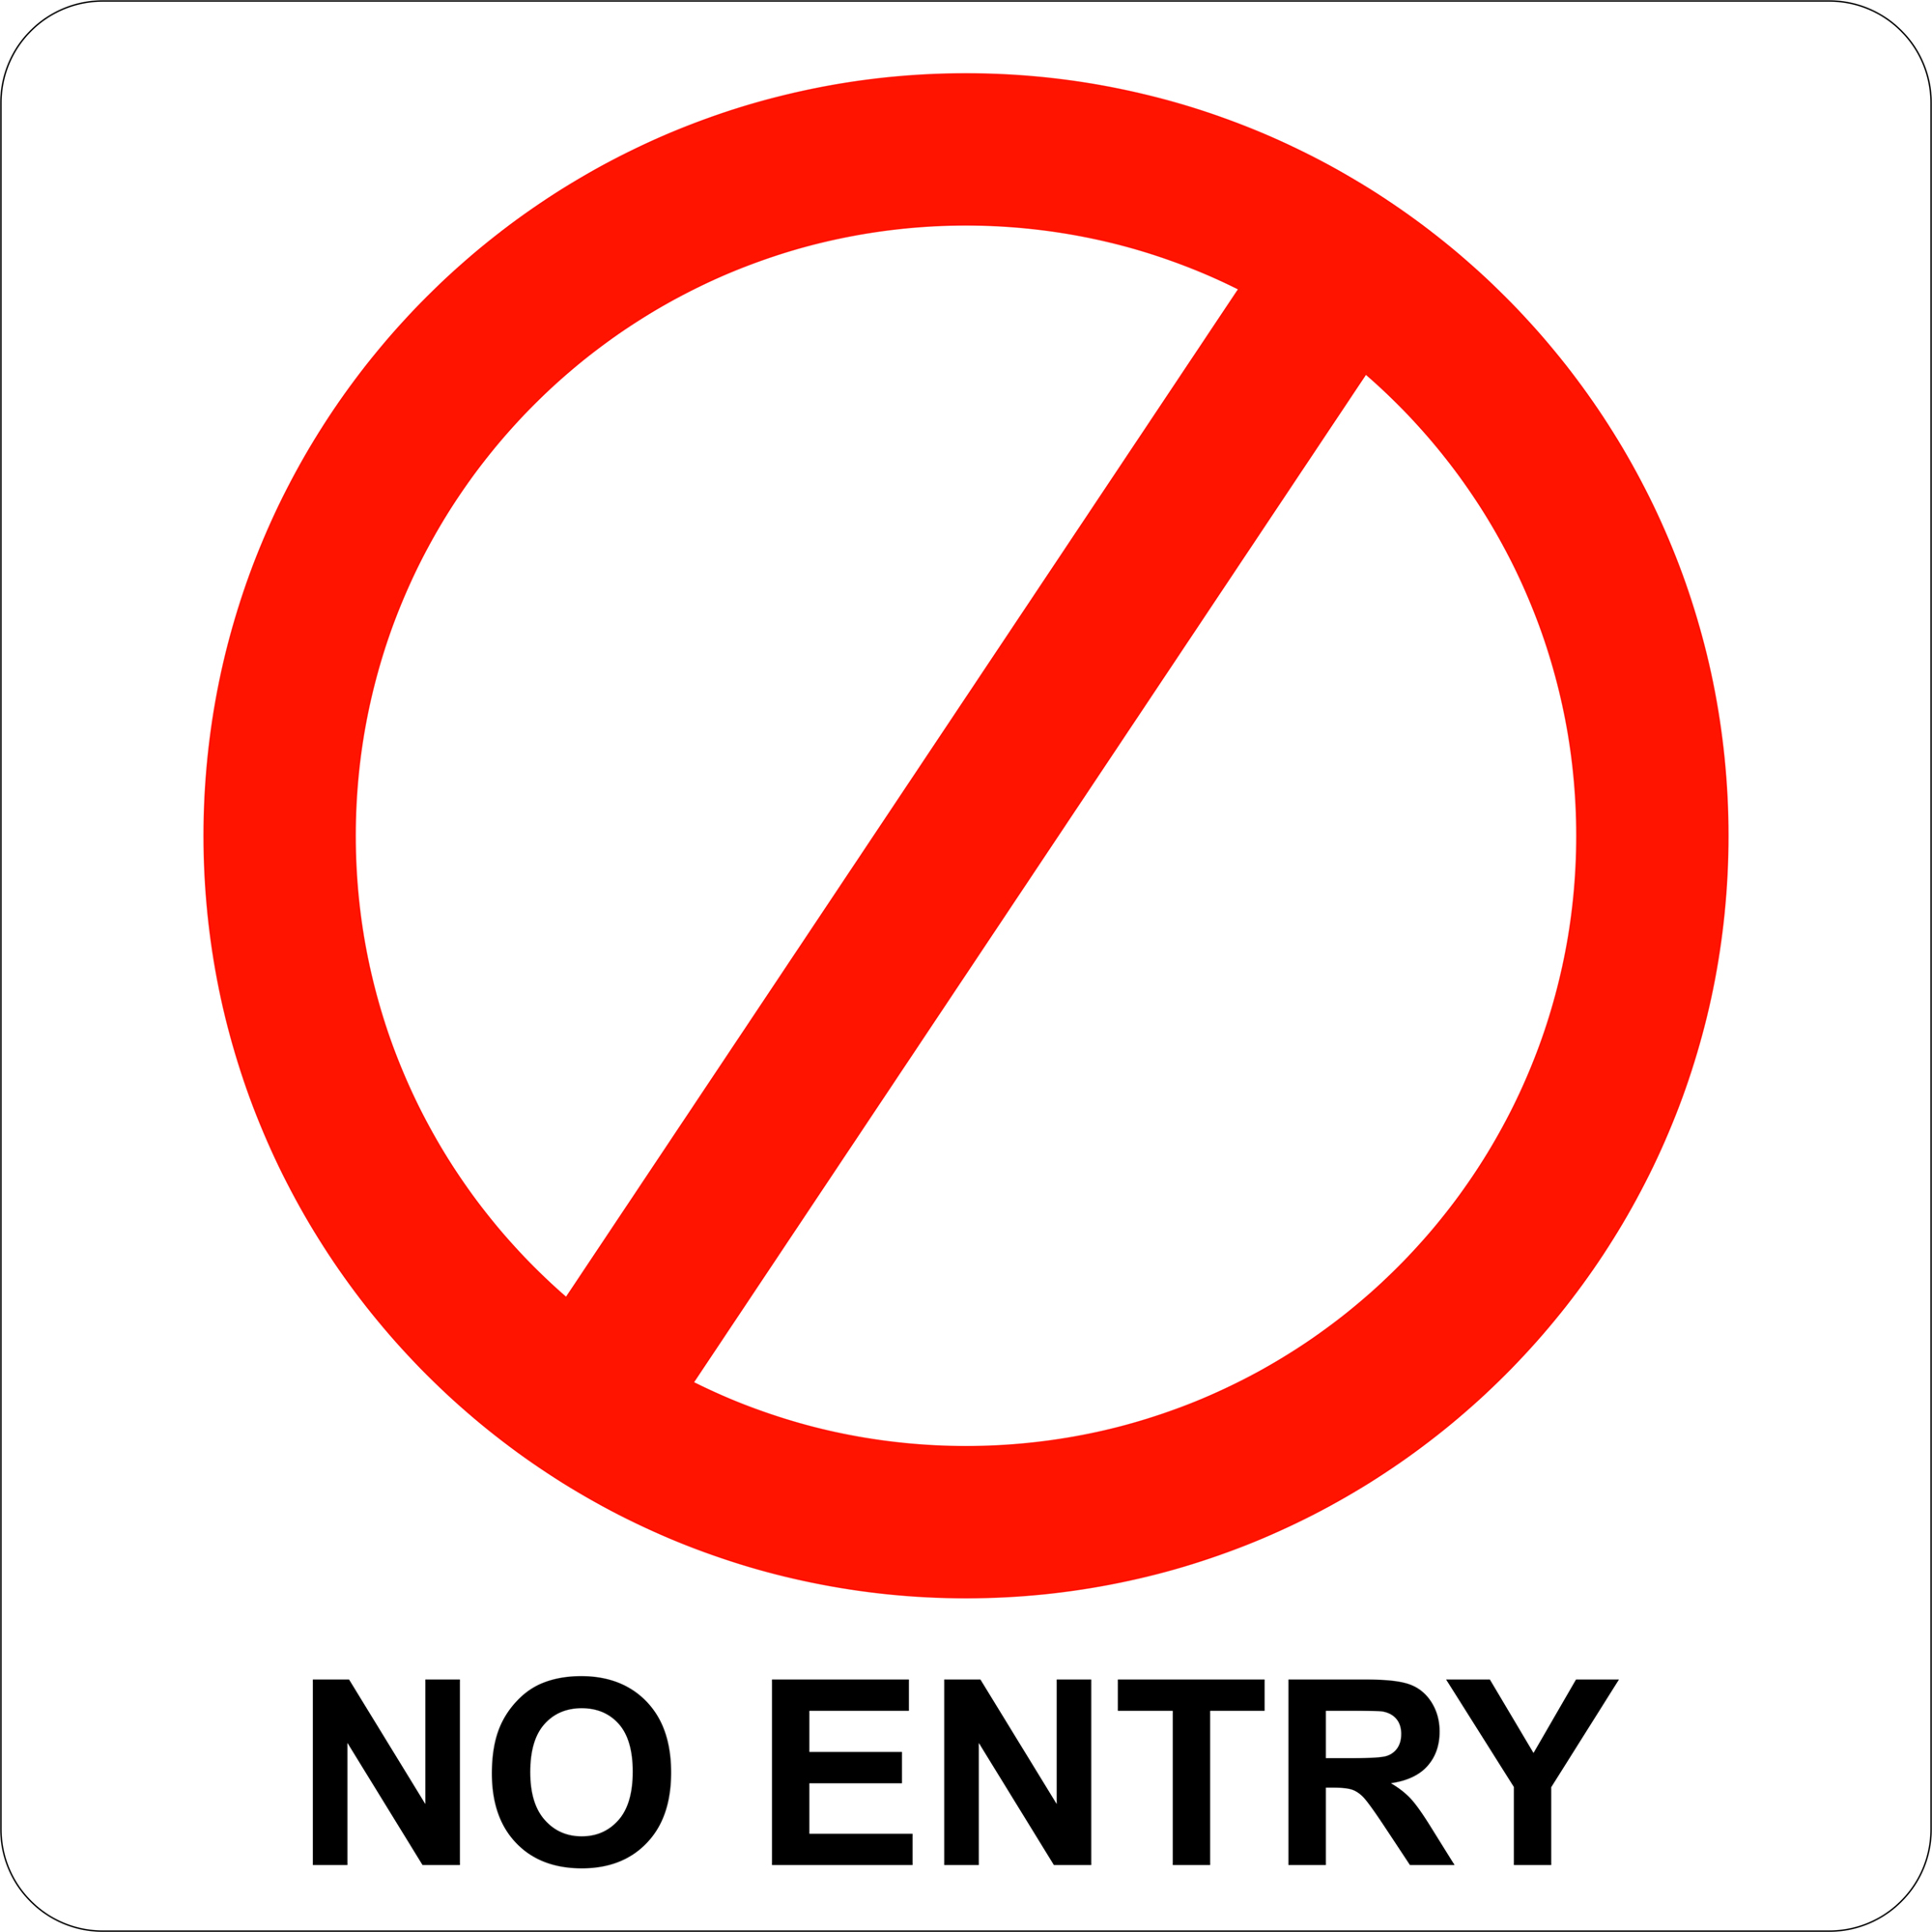 No Entry Symbolic Sign, Printed On White Acp (150 X 150mm. 3 December Signs Of Stroke. Buy Old Vinyl Records. September 20th Signs Of Stroke. Feliz Navidad Banners. Biblical Signs. 2016 Dodge Charger Decals. Error Signs. Front Window Decals